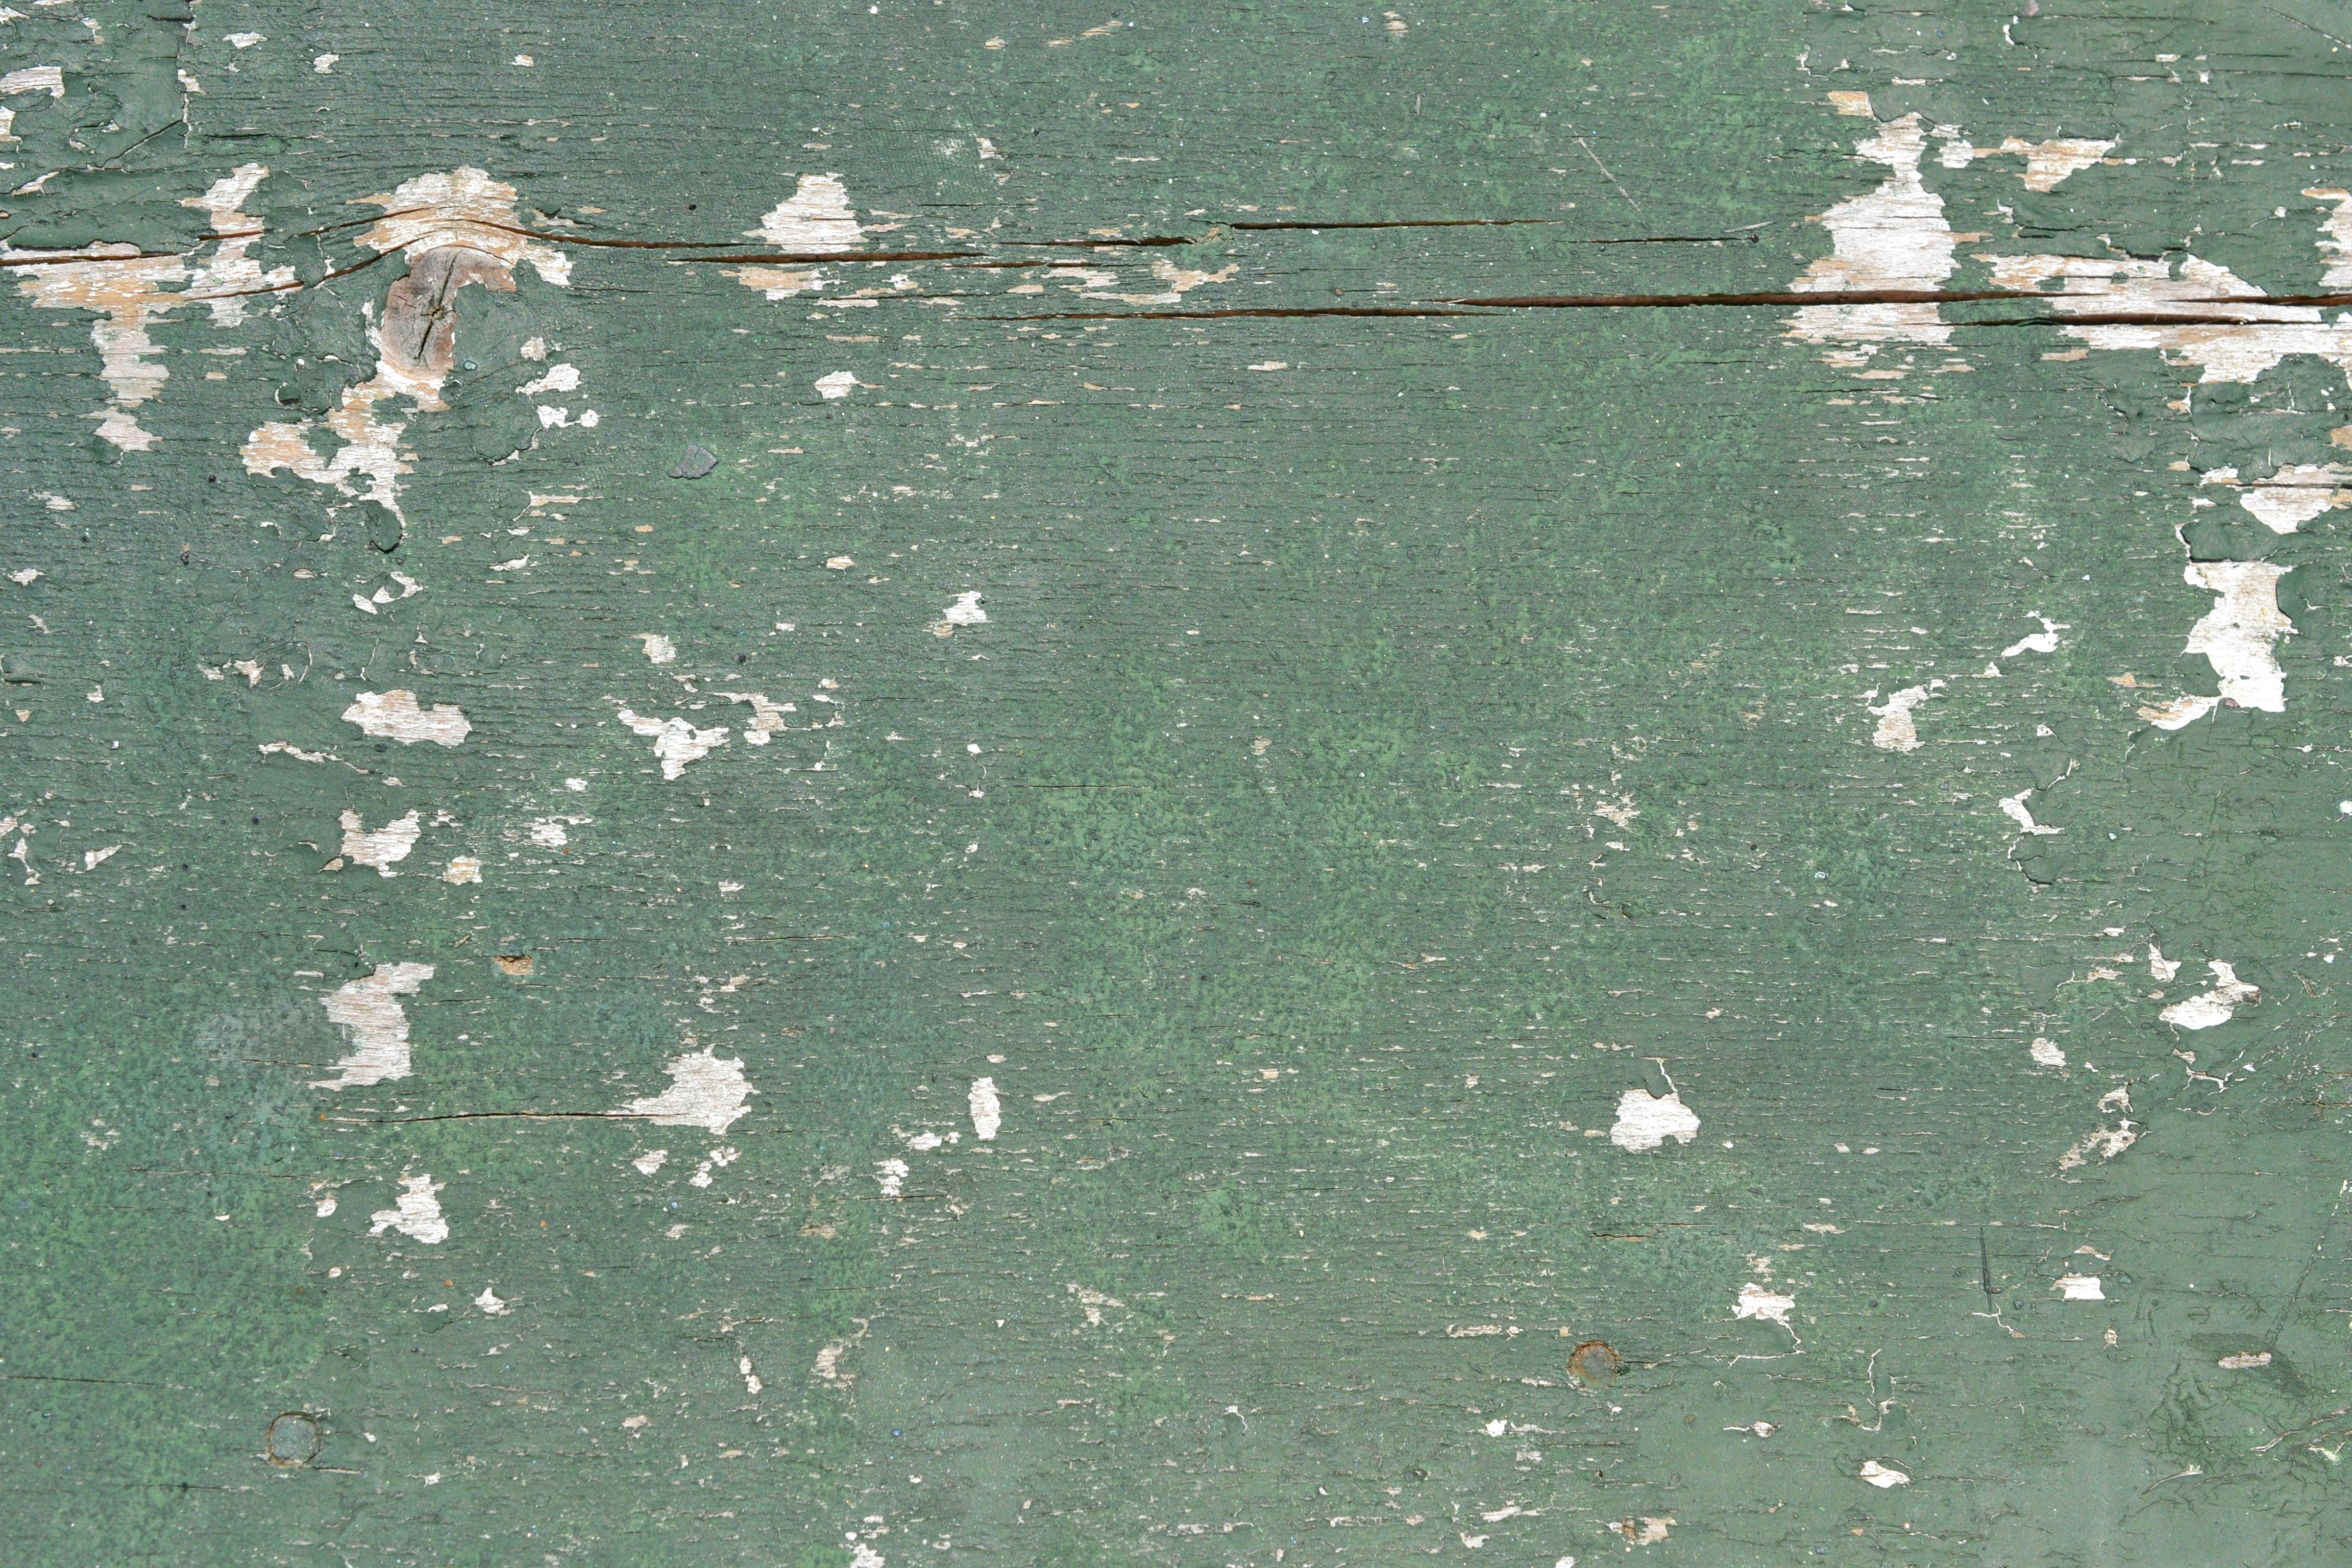 Free stock photo of cracking, cracks, fissures, old